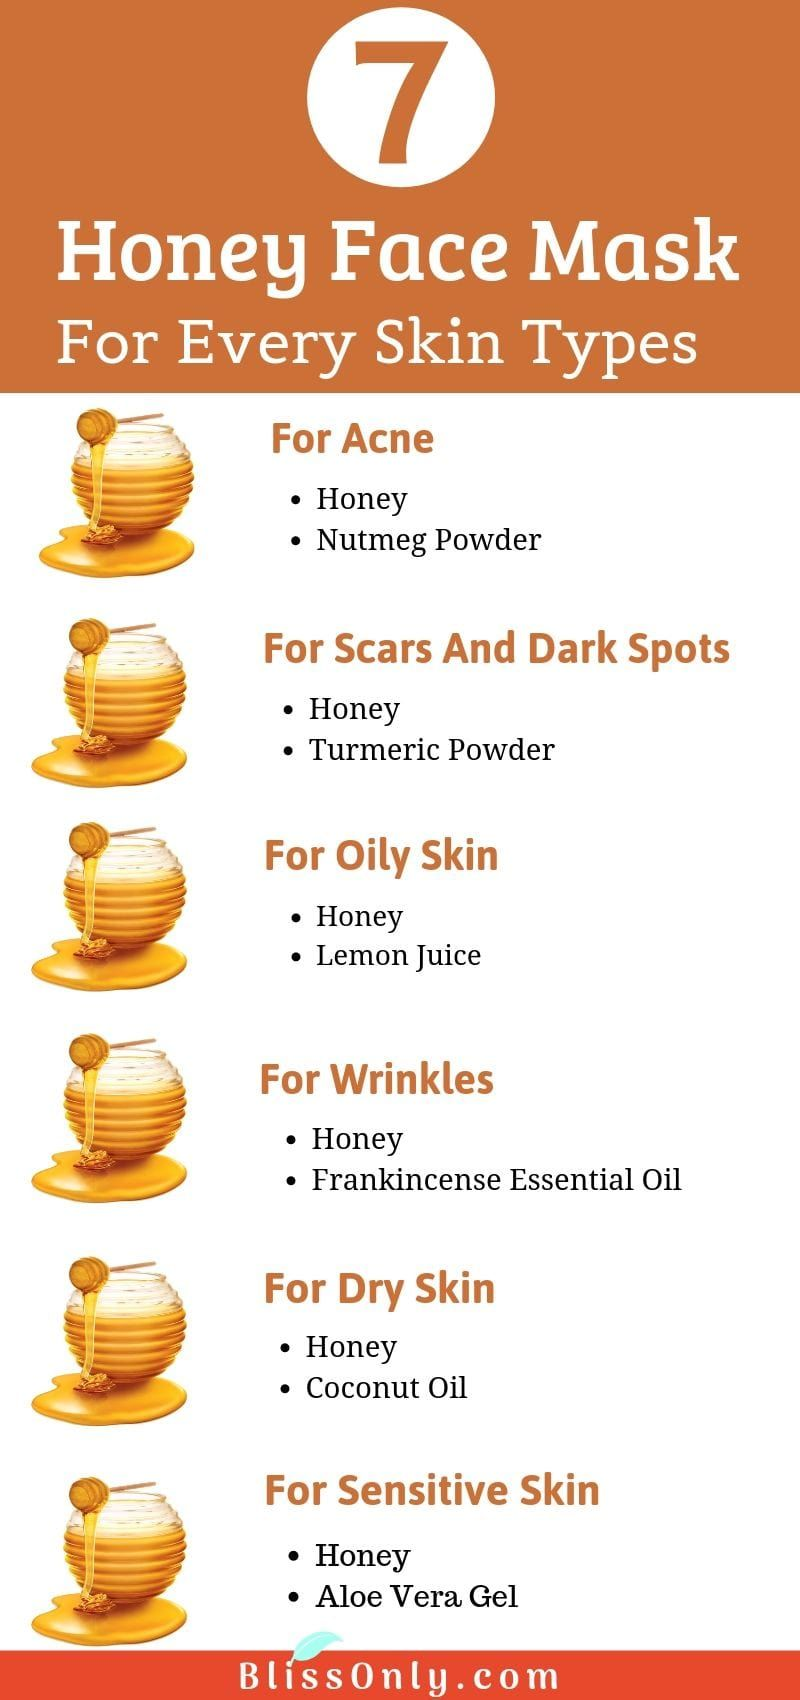 Photo of 7 Best Honey Face Mask For All Skin types – BlissOnly